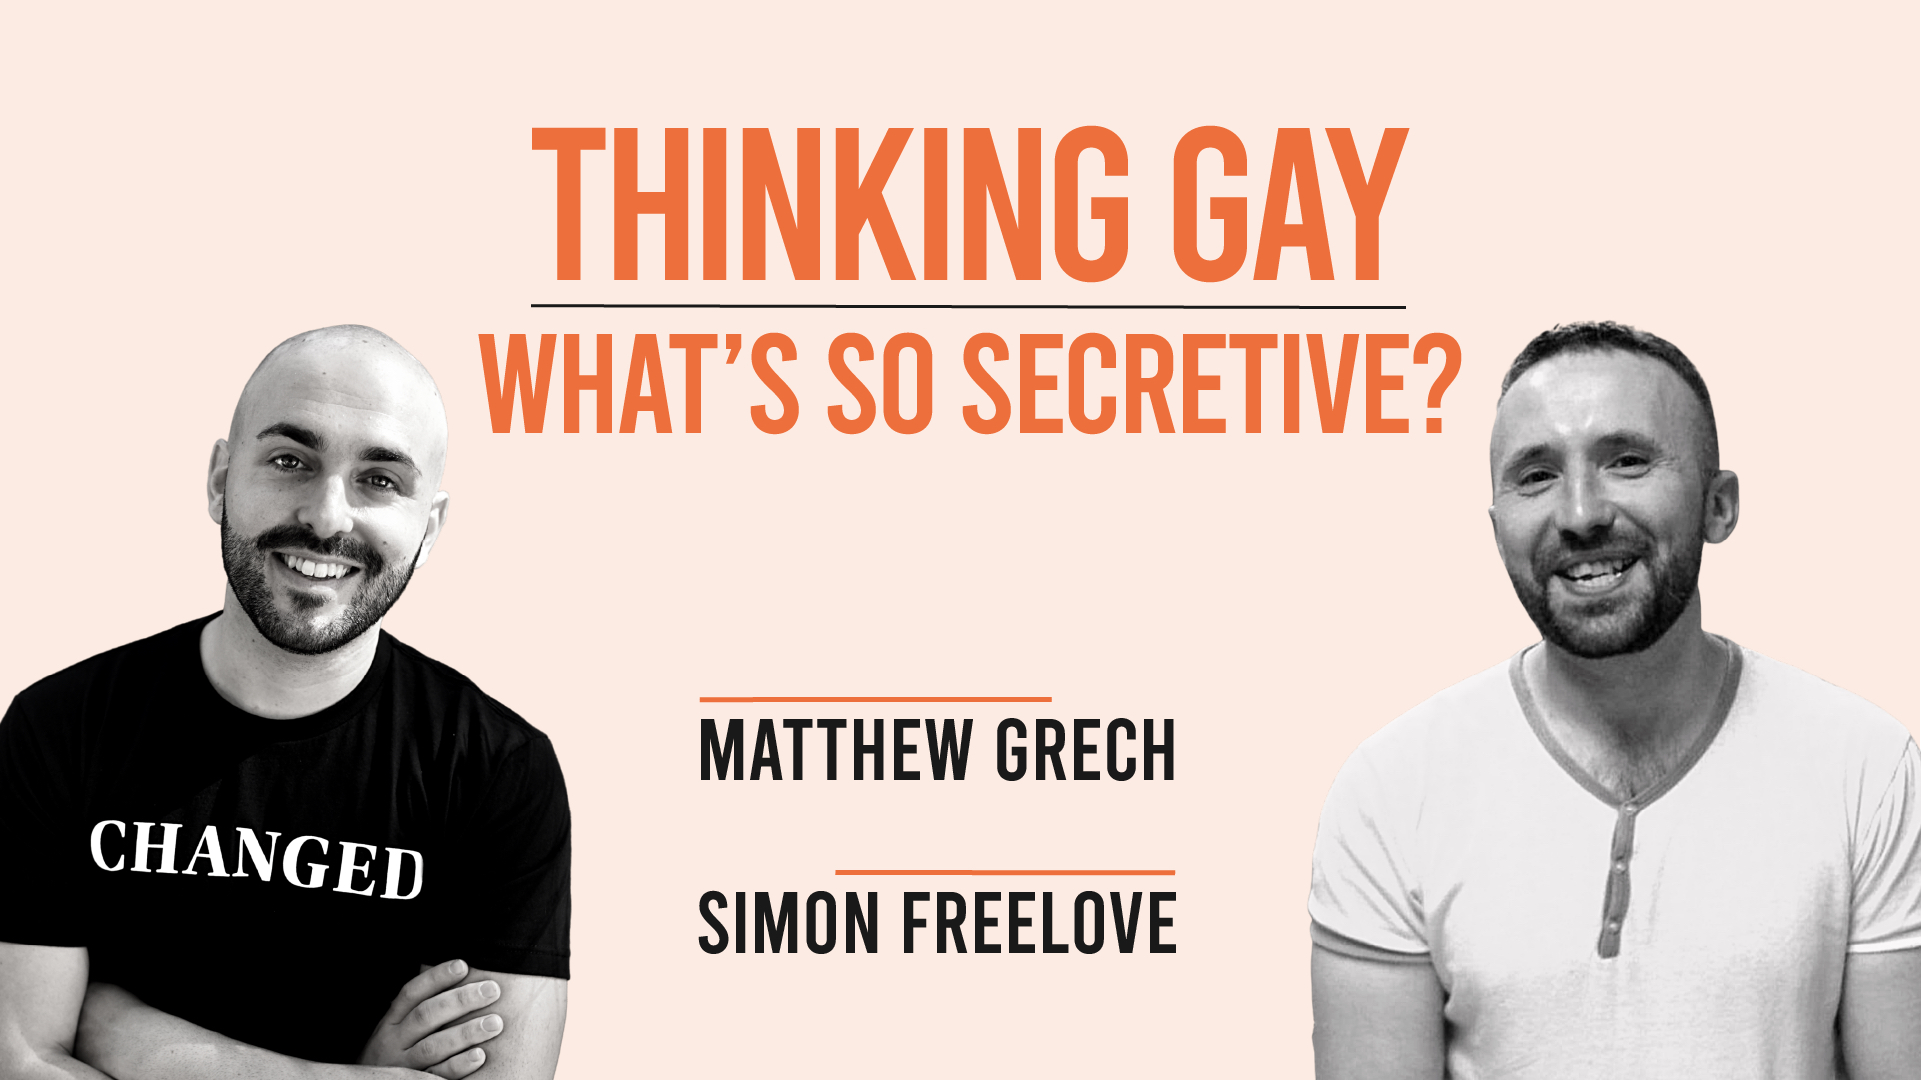 Thinking Gay | IFTCC Live | Series 2 Episode 3 |  What's so Secretive?